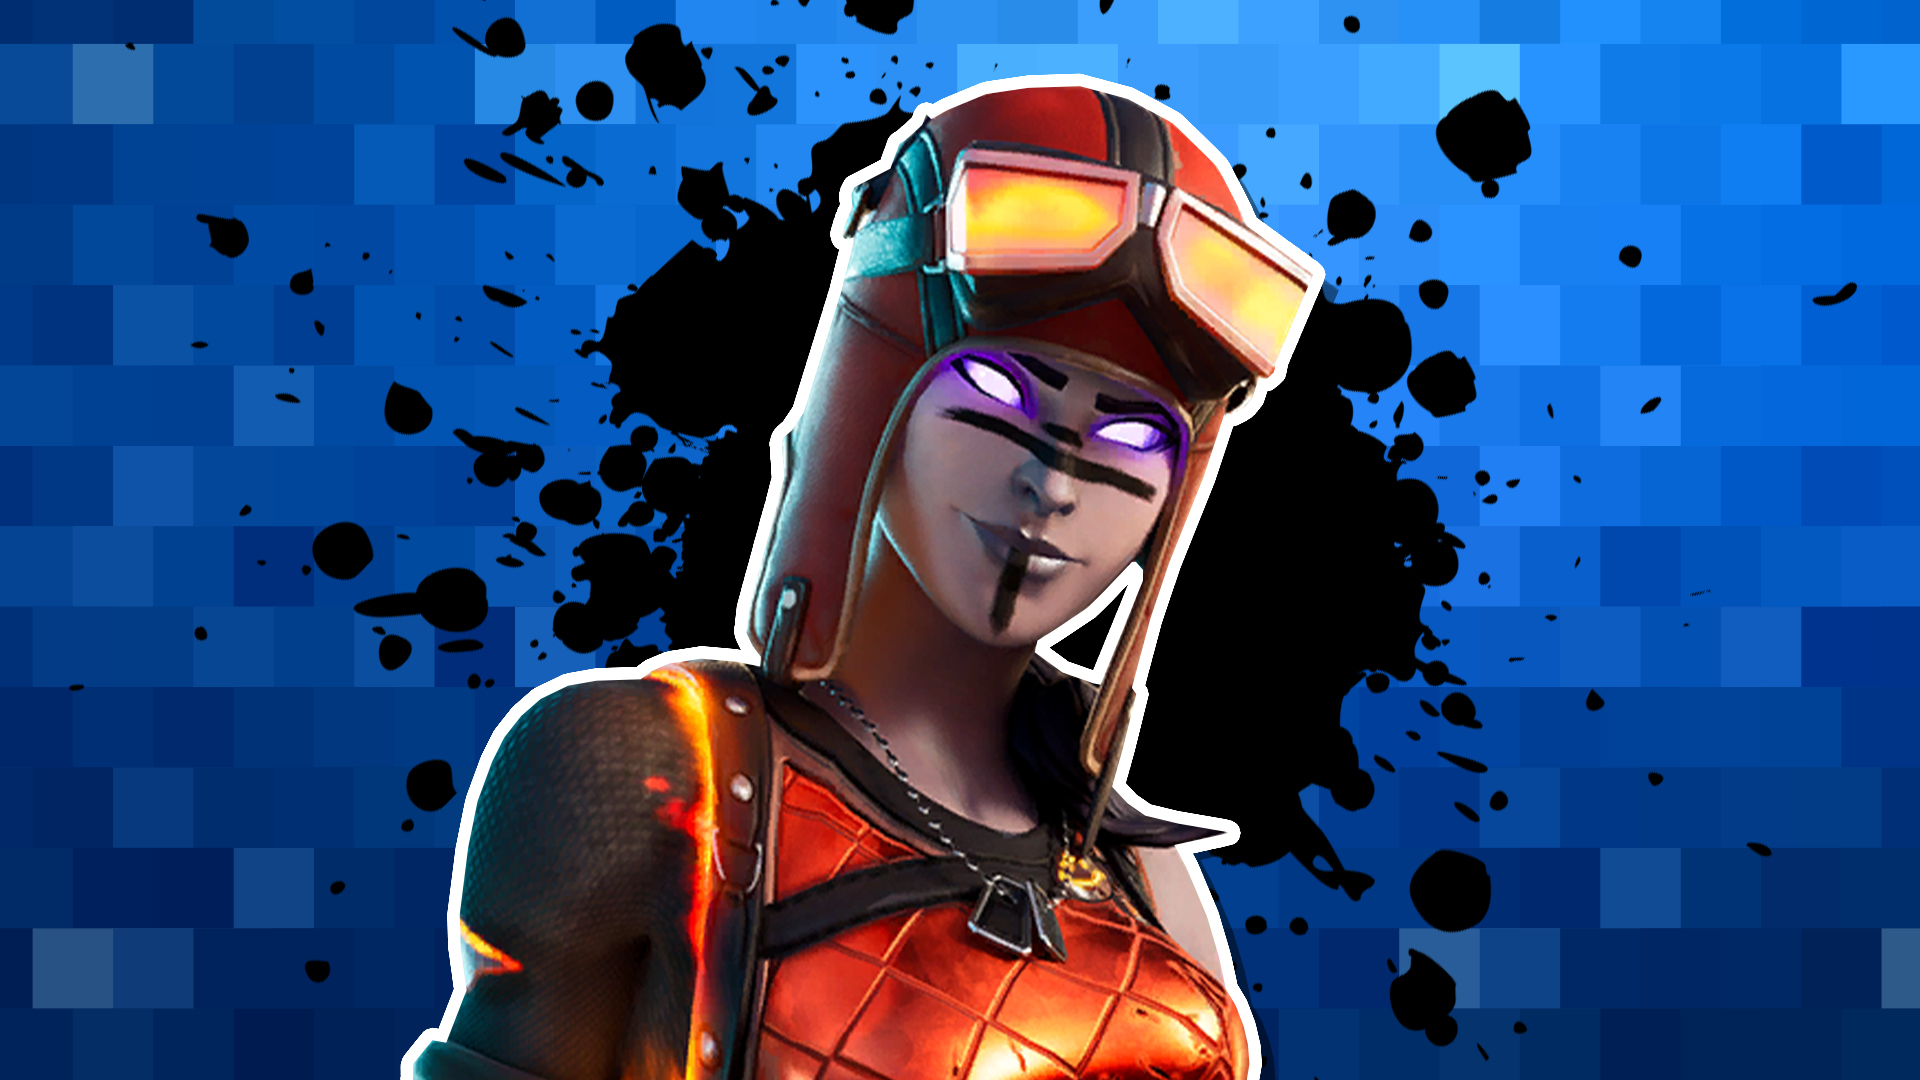 The Most Popular Fortnite Characters The Top 10 Fortnite Skins Best Fortnite Skins Fortnite Best Skins